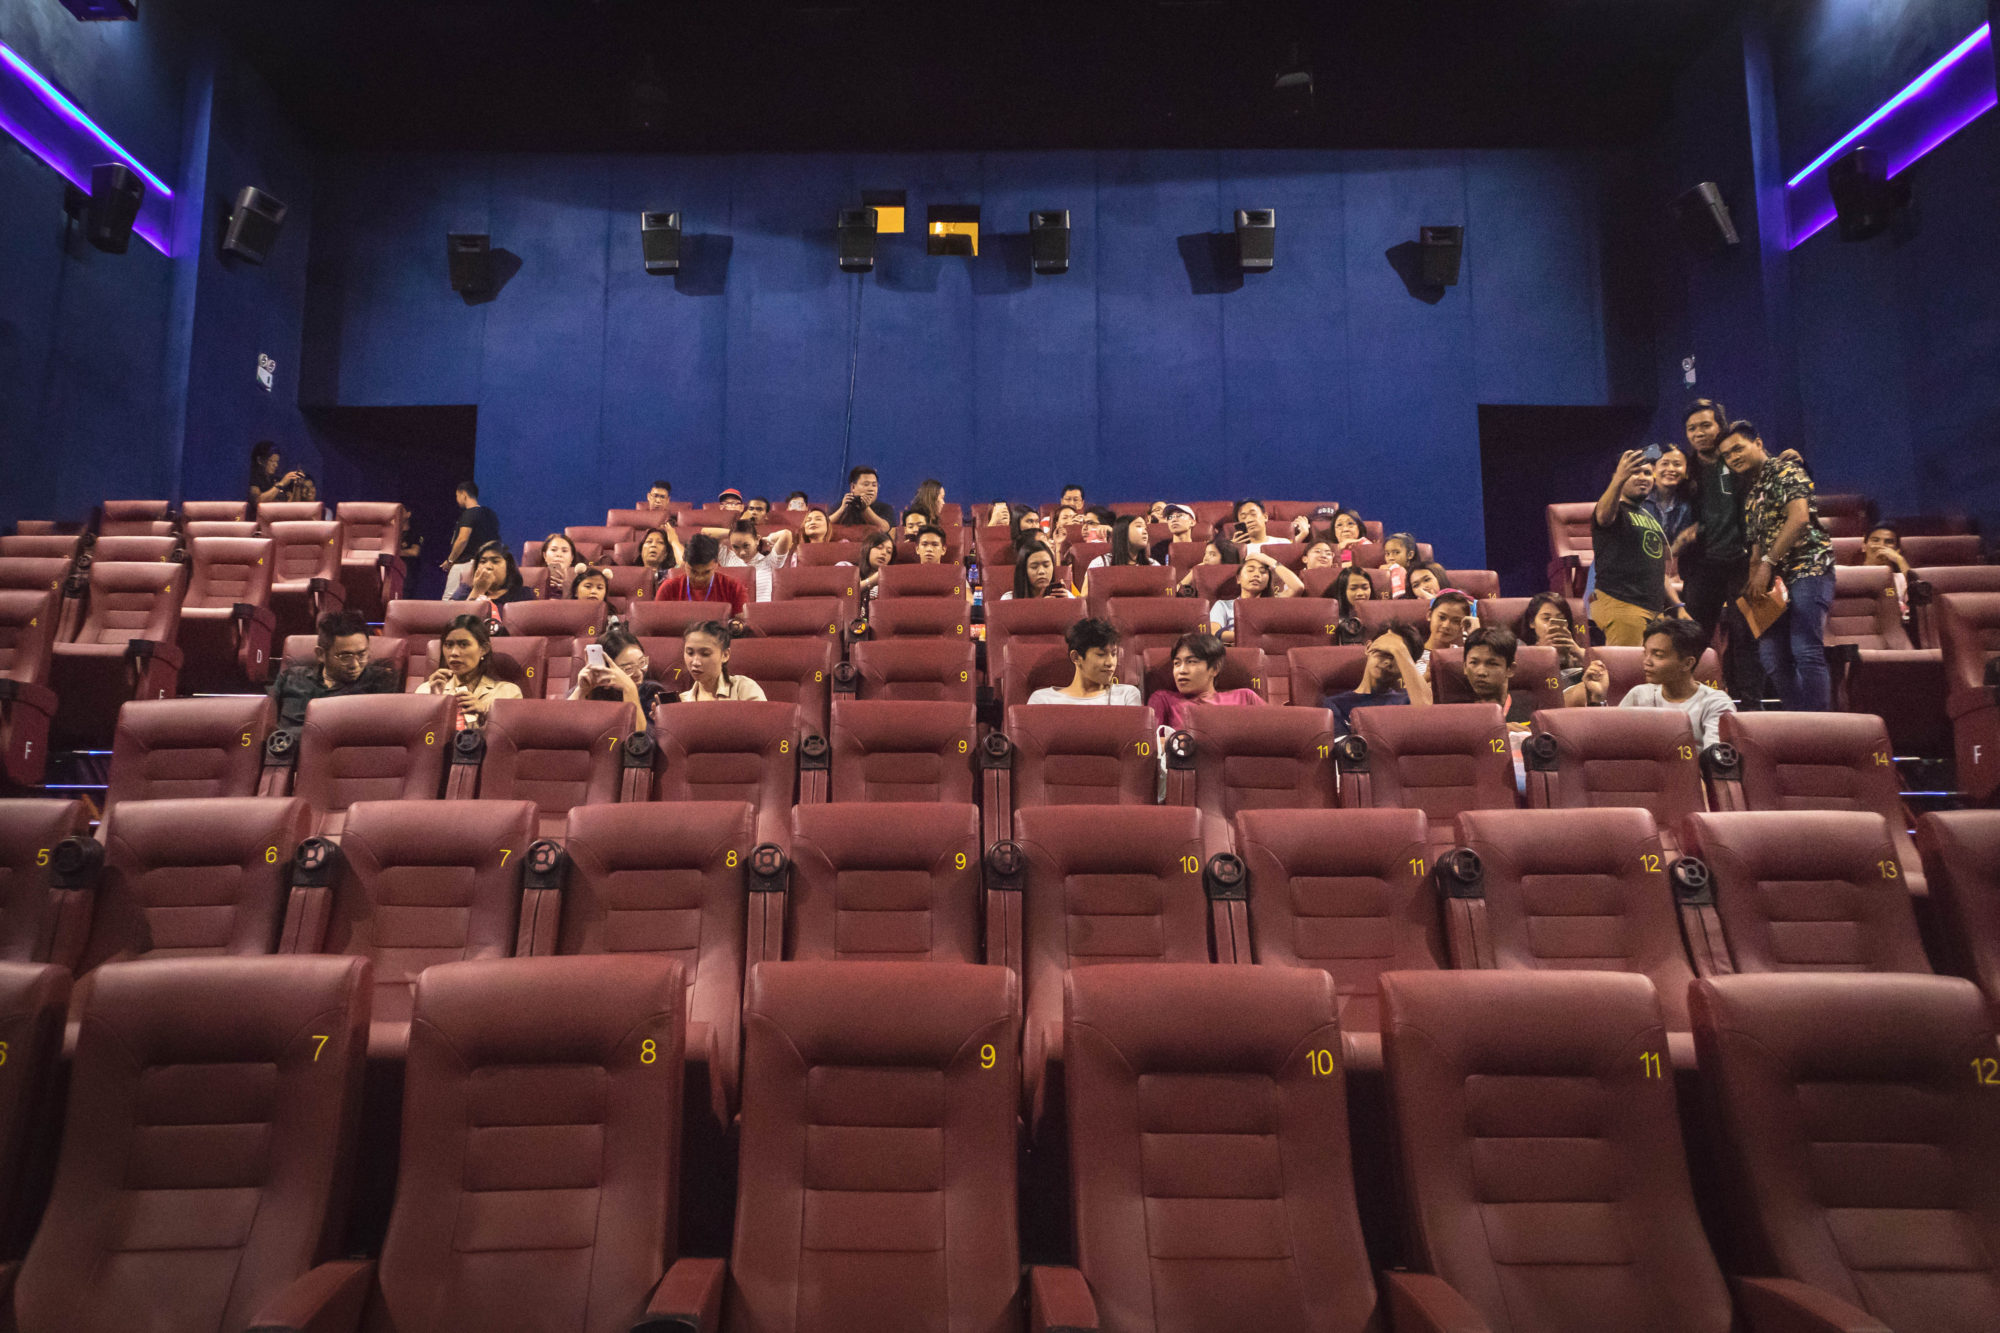 NCCC Mall Buhangin Dolby Atmos Theater 3